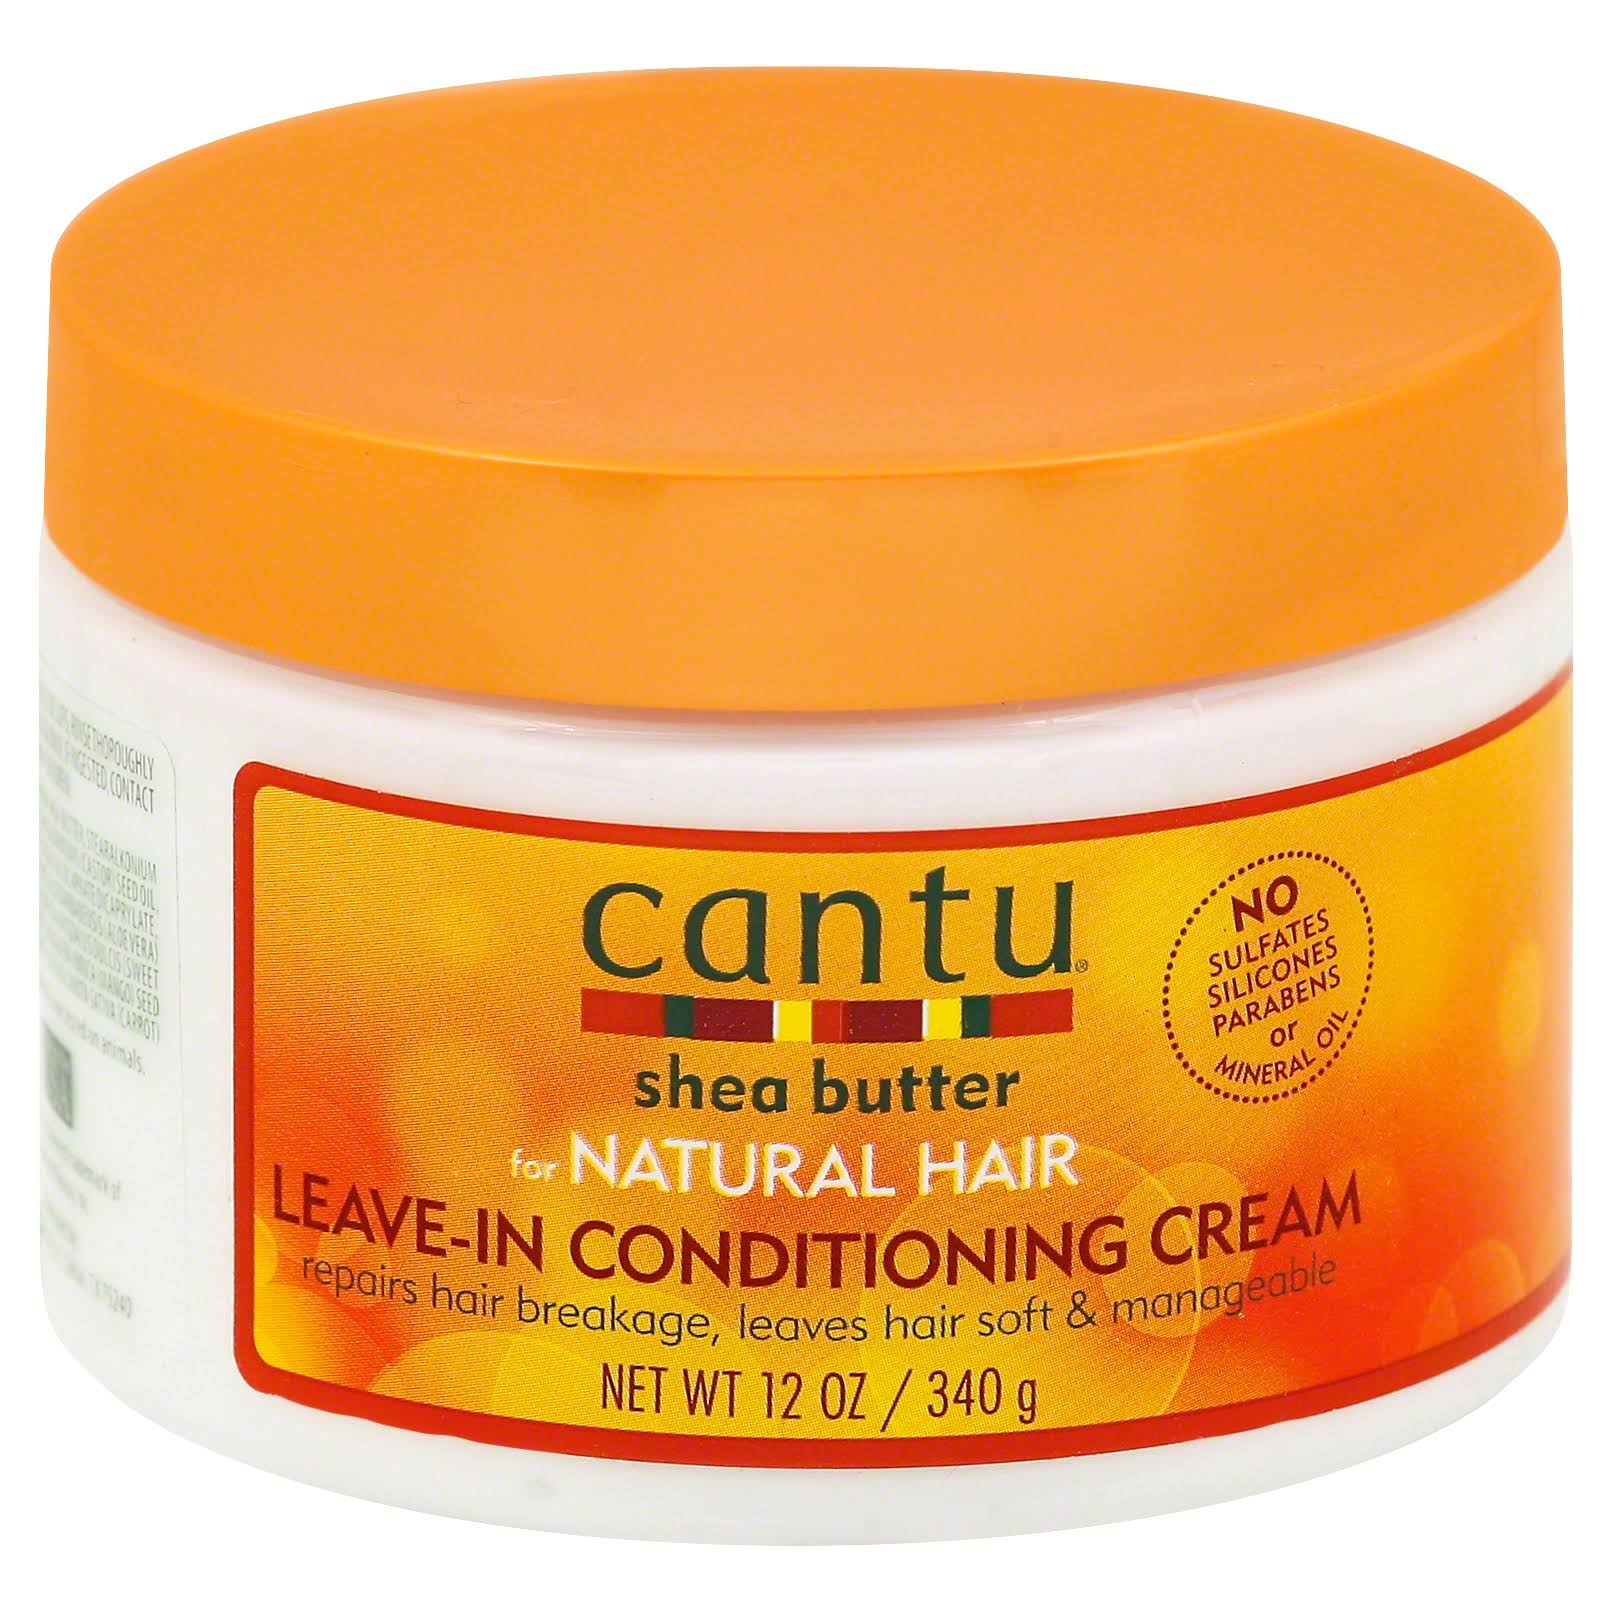 Cantu Shea Butter for Natural Hair Leave in Conditioning Repair Cream - 12oz